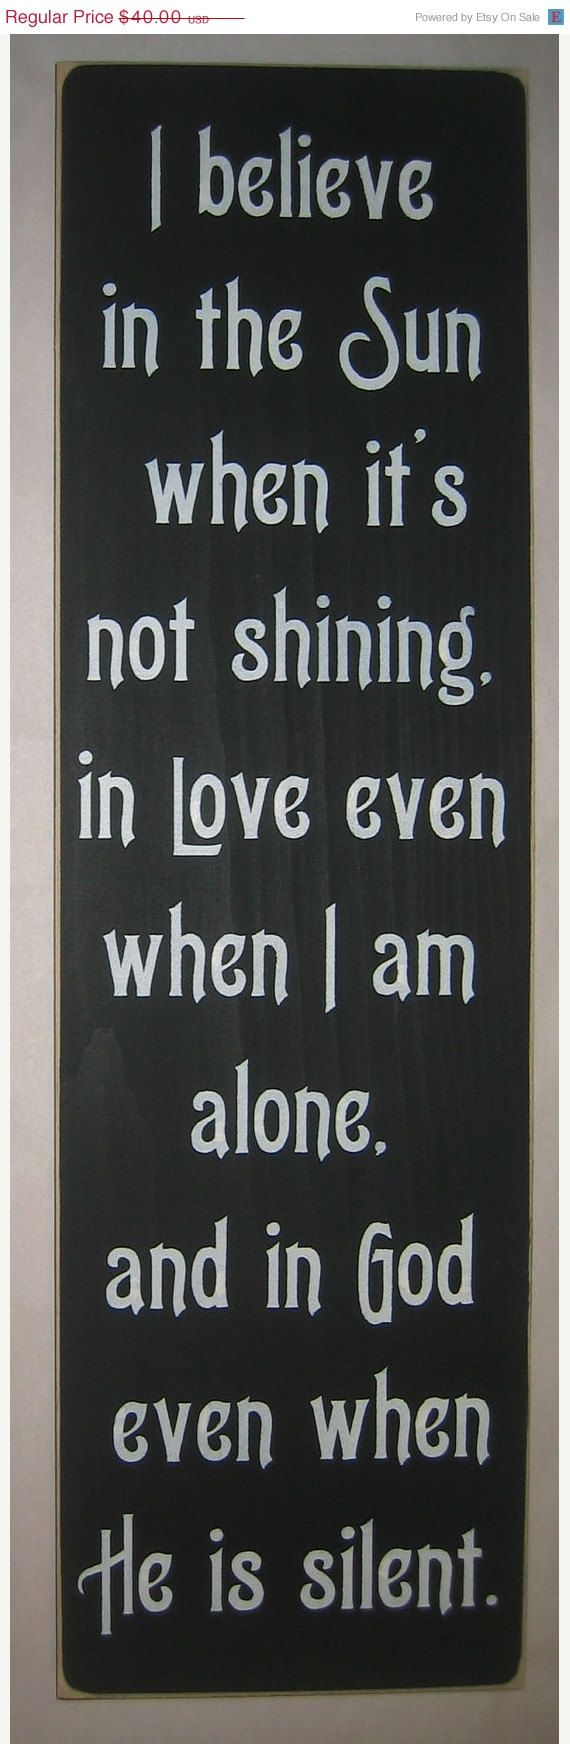 on sale I believe in the sun when it's not by CottageSignShoppe